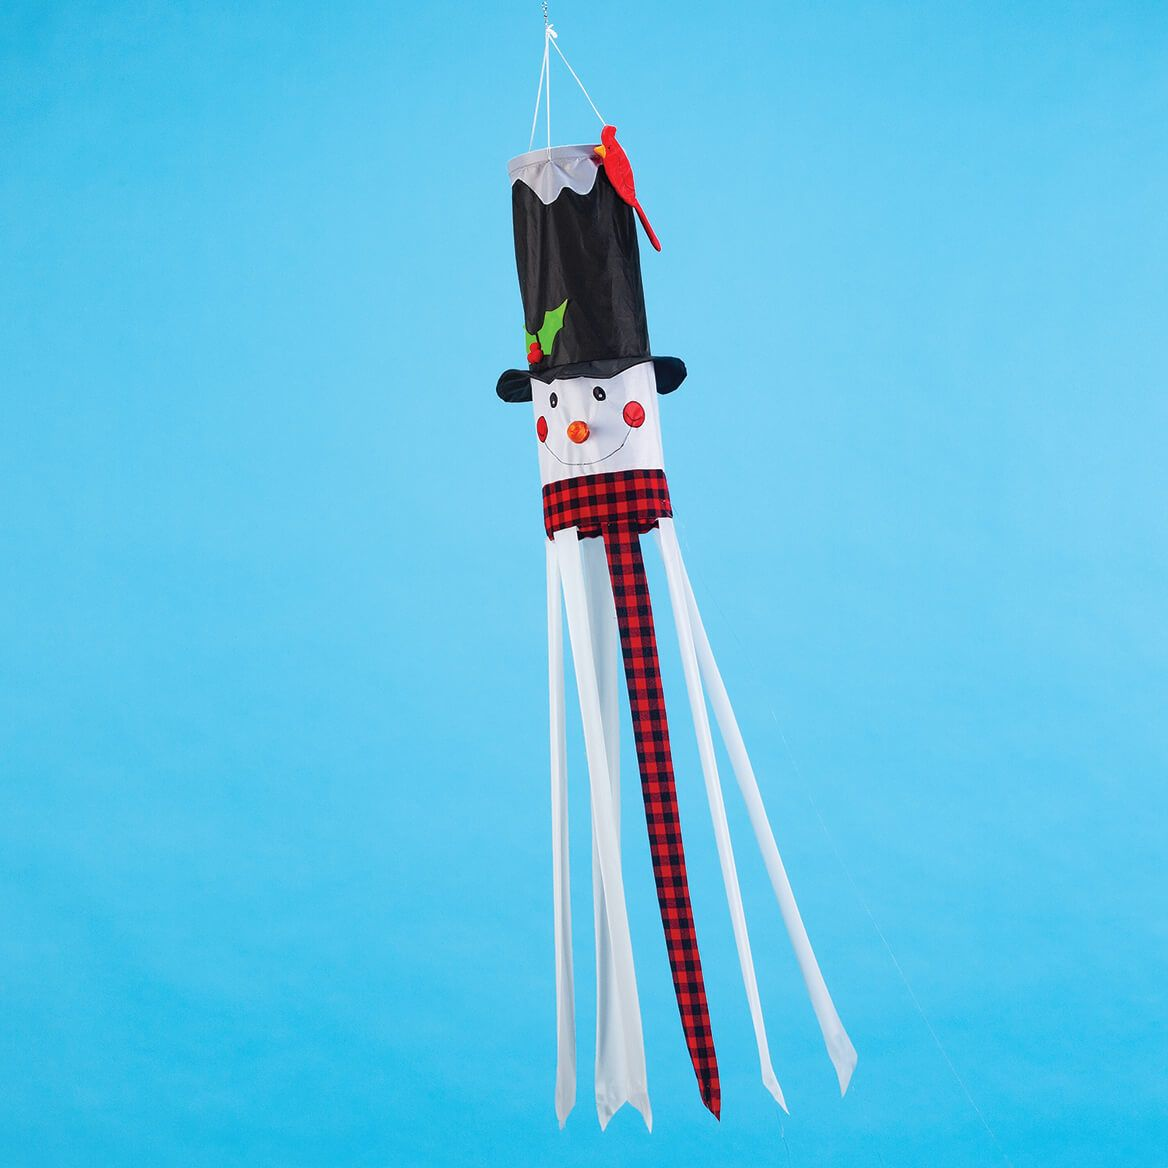 Snowman Windsock by Holiday Peak™-372125